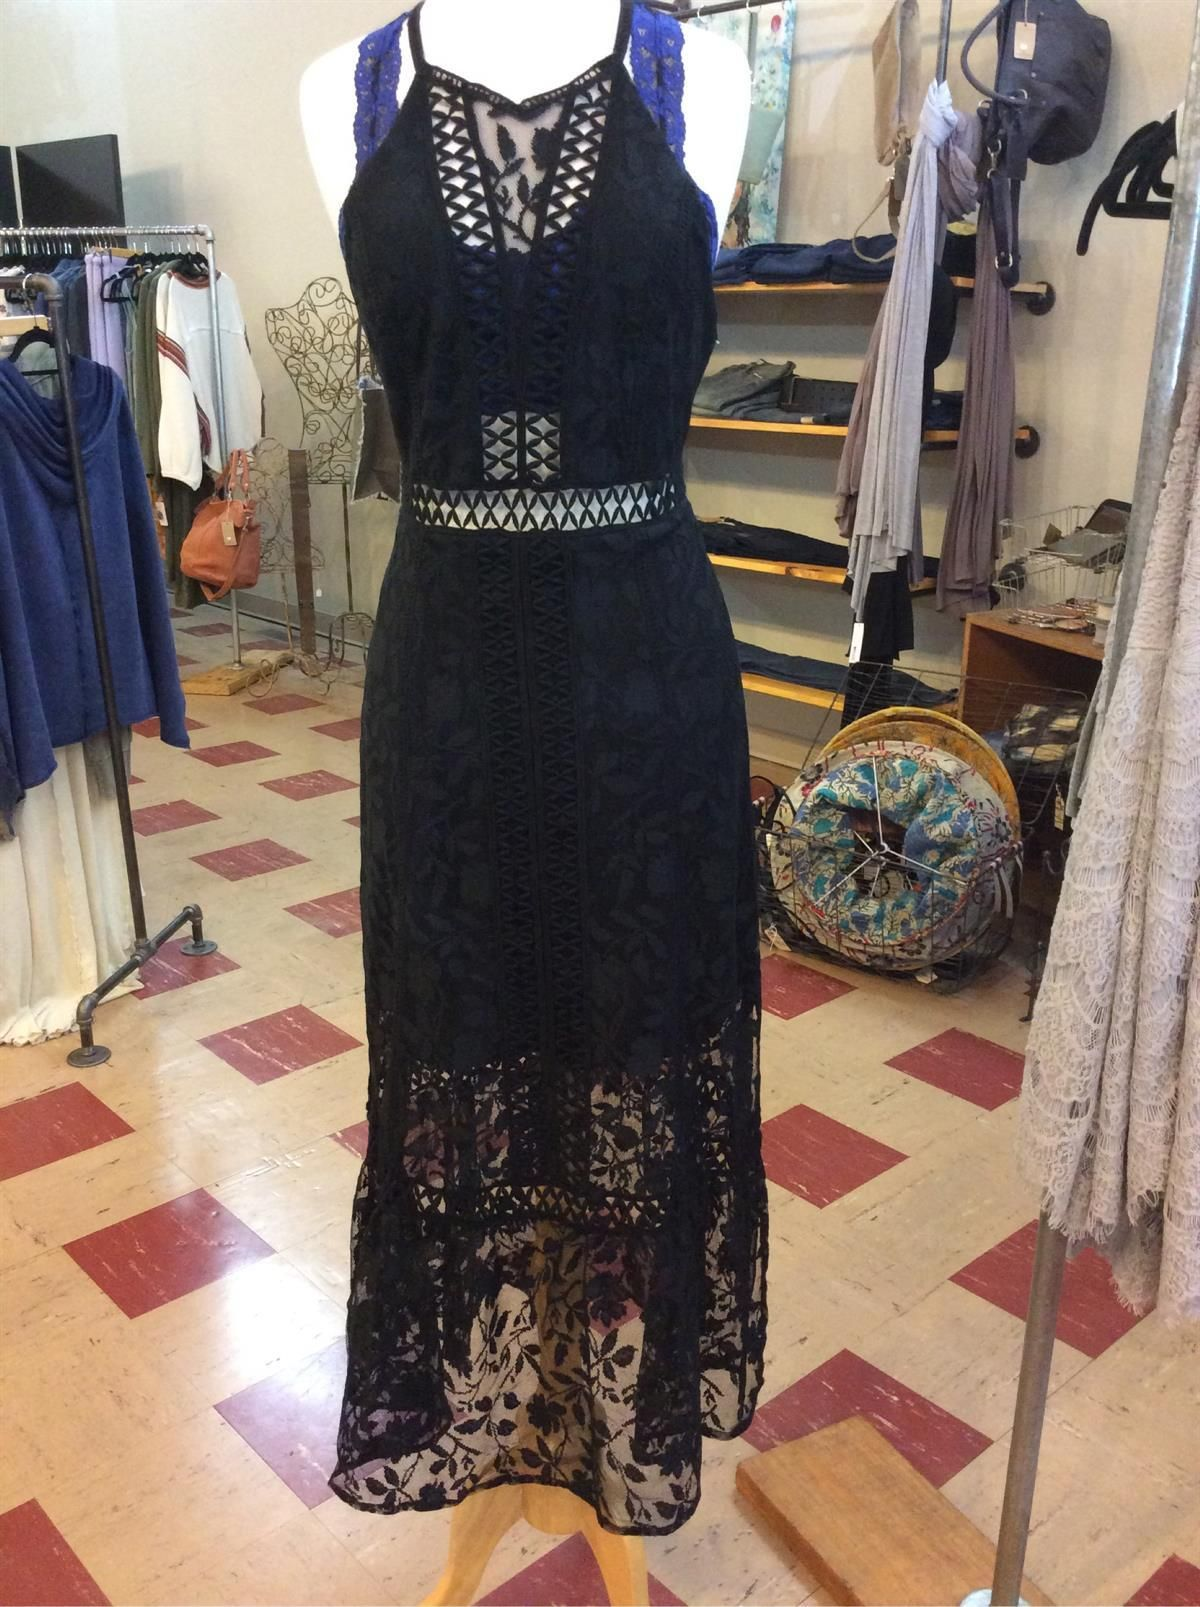 Just arrived. Beautiful lace Free People dress to wear for any event. #Freepeople